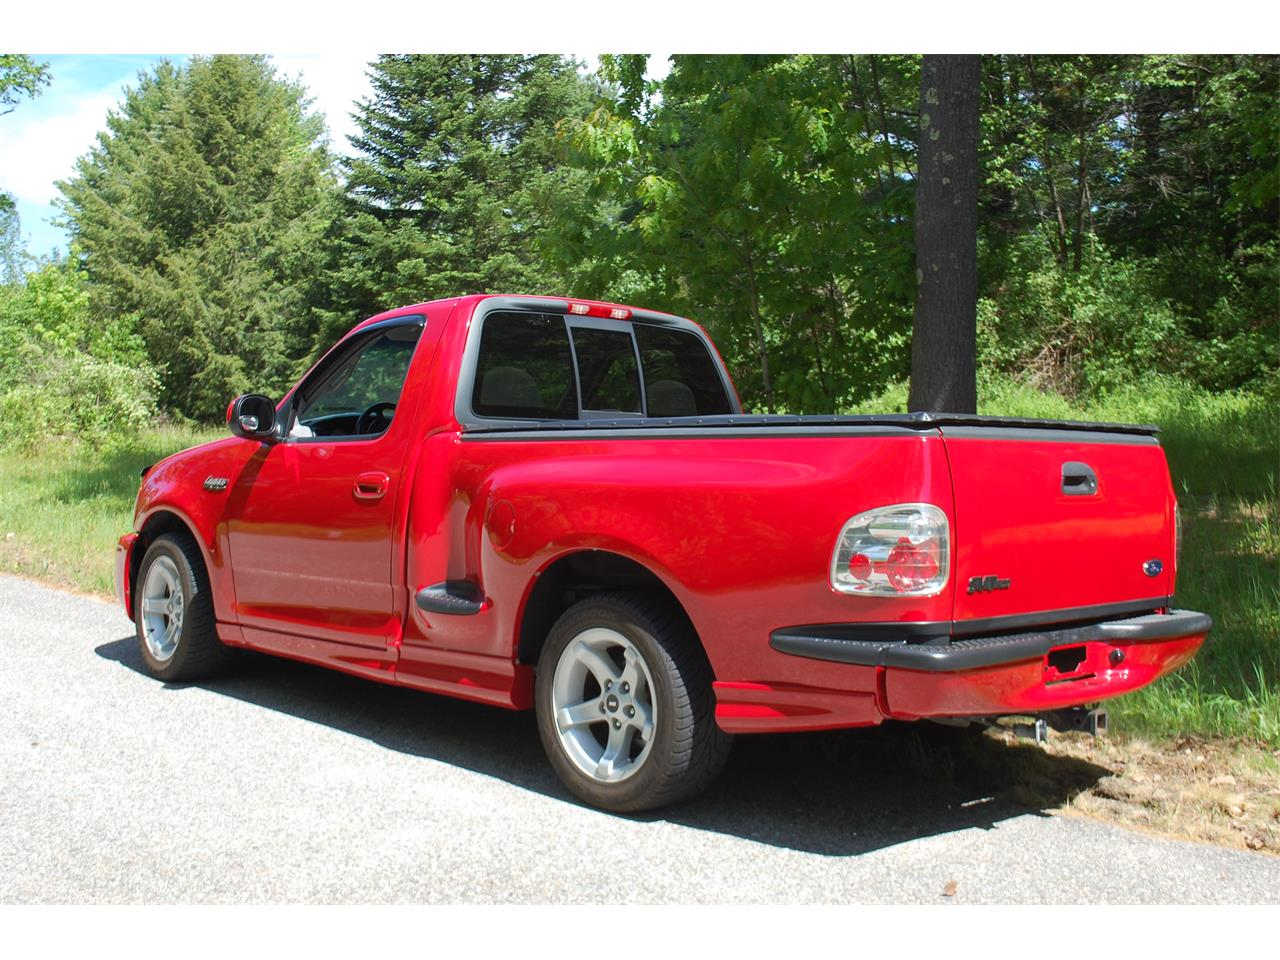 2000 Ford Lightning (CC-1098010) for sale in arundel, Maine